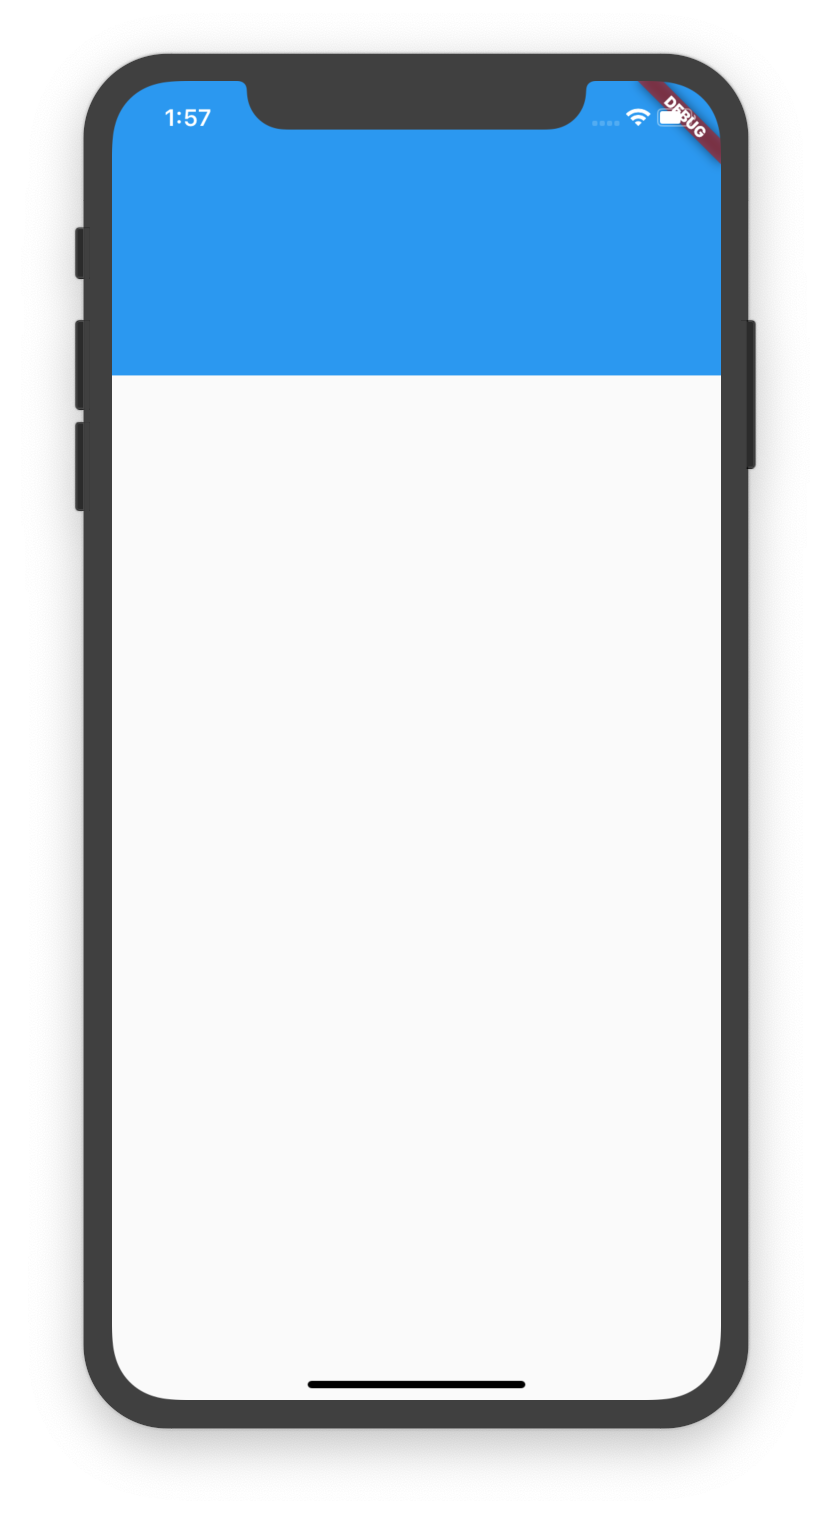 Better way to deal with the status bar · Issue #4518